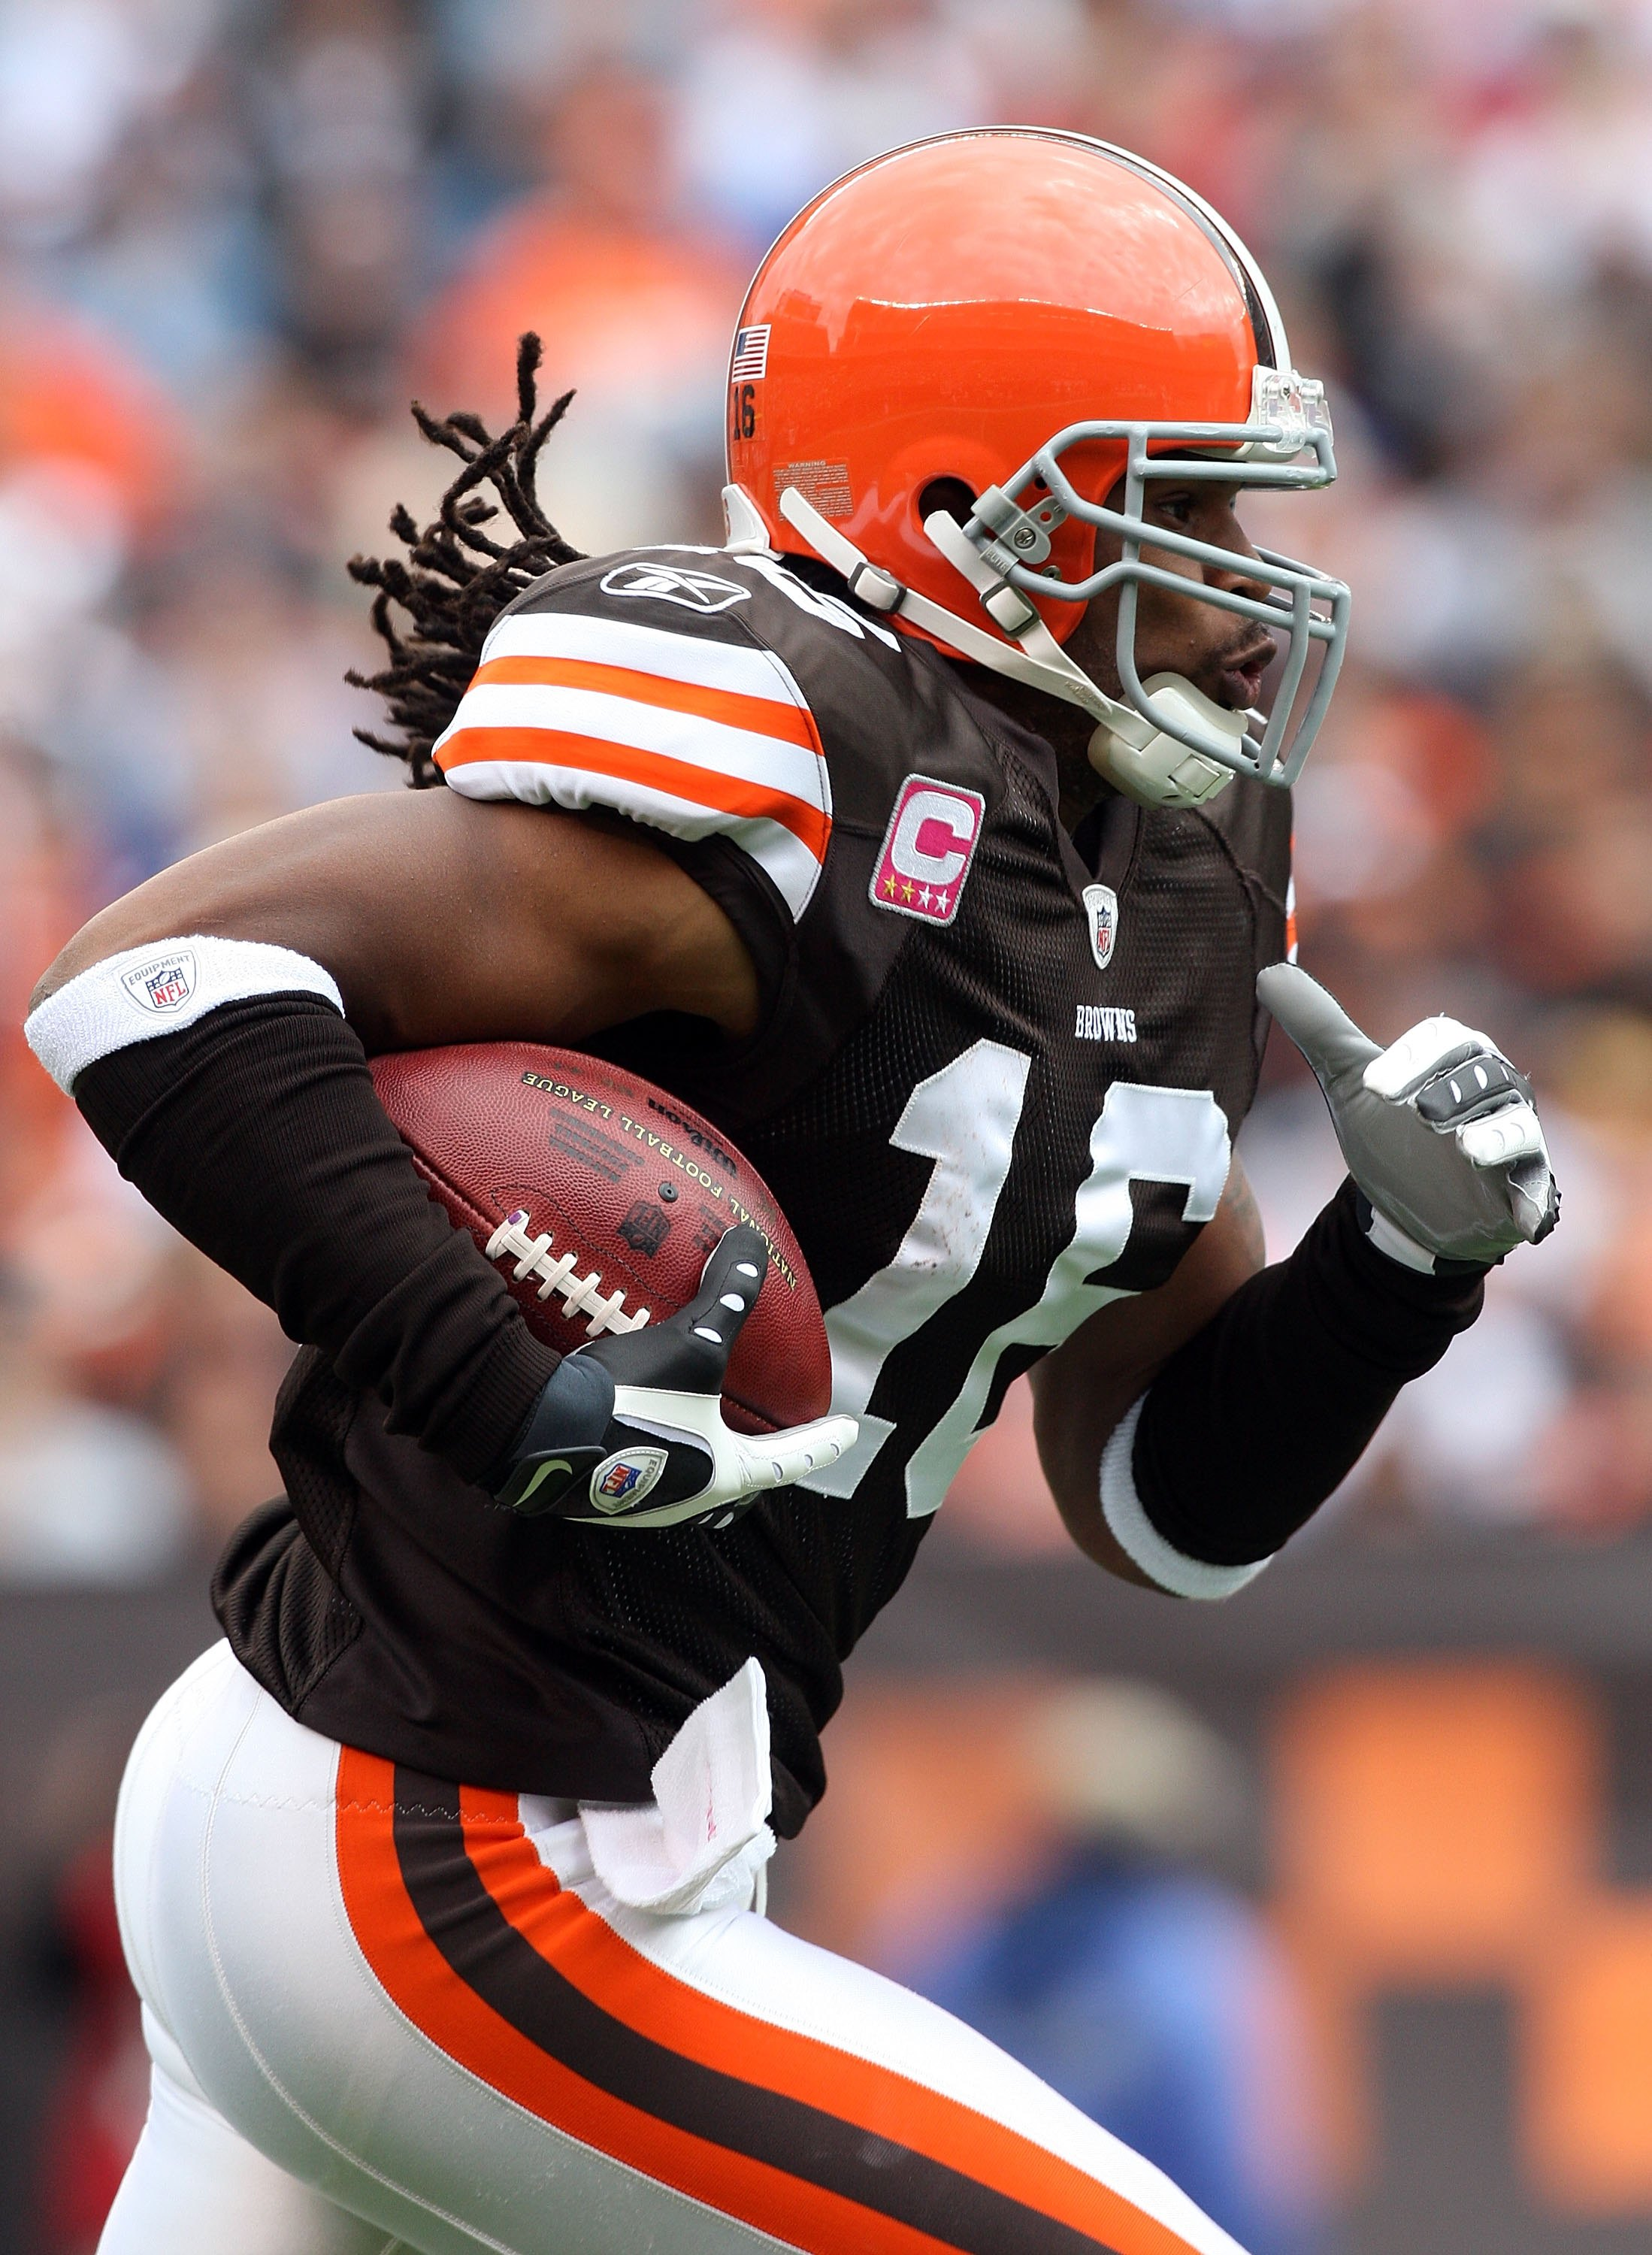 CLEVELAND - OCTOBER 04:  Joshua Cribbs #16 of the Cleveland Browns runs the ball against the Cincinnati Bengals during their game at Cleveland Browns Stadium on October 4, 2009 in Cleveland, Ohio. The Bengals defeated the Browns 23-20 in overtime.  (Photo